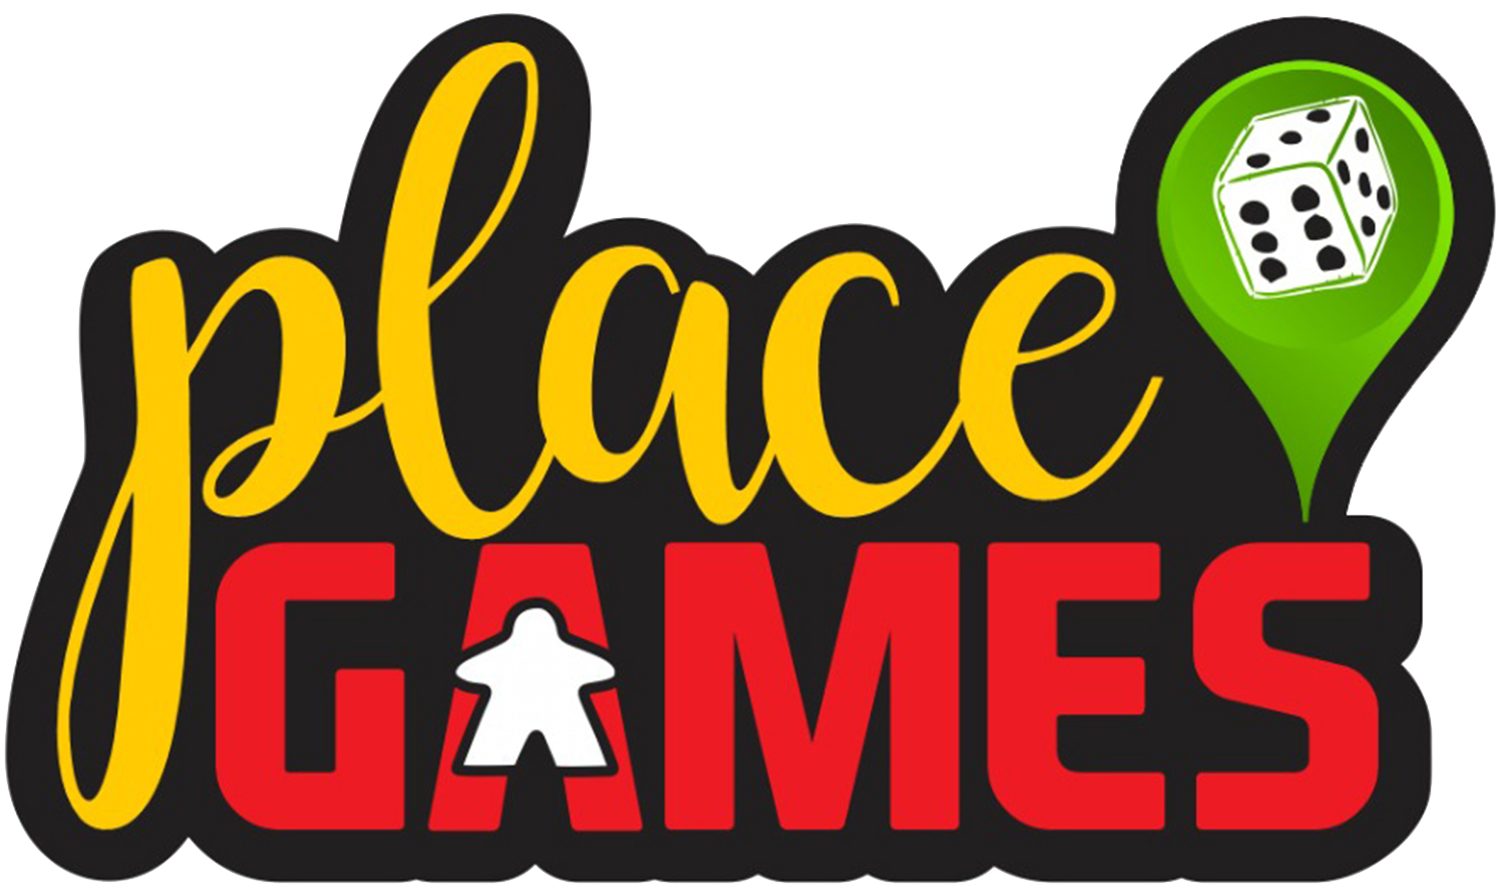 Place Games